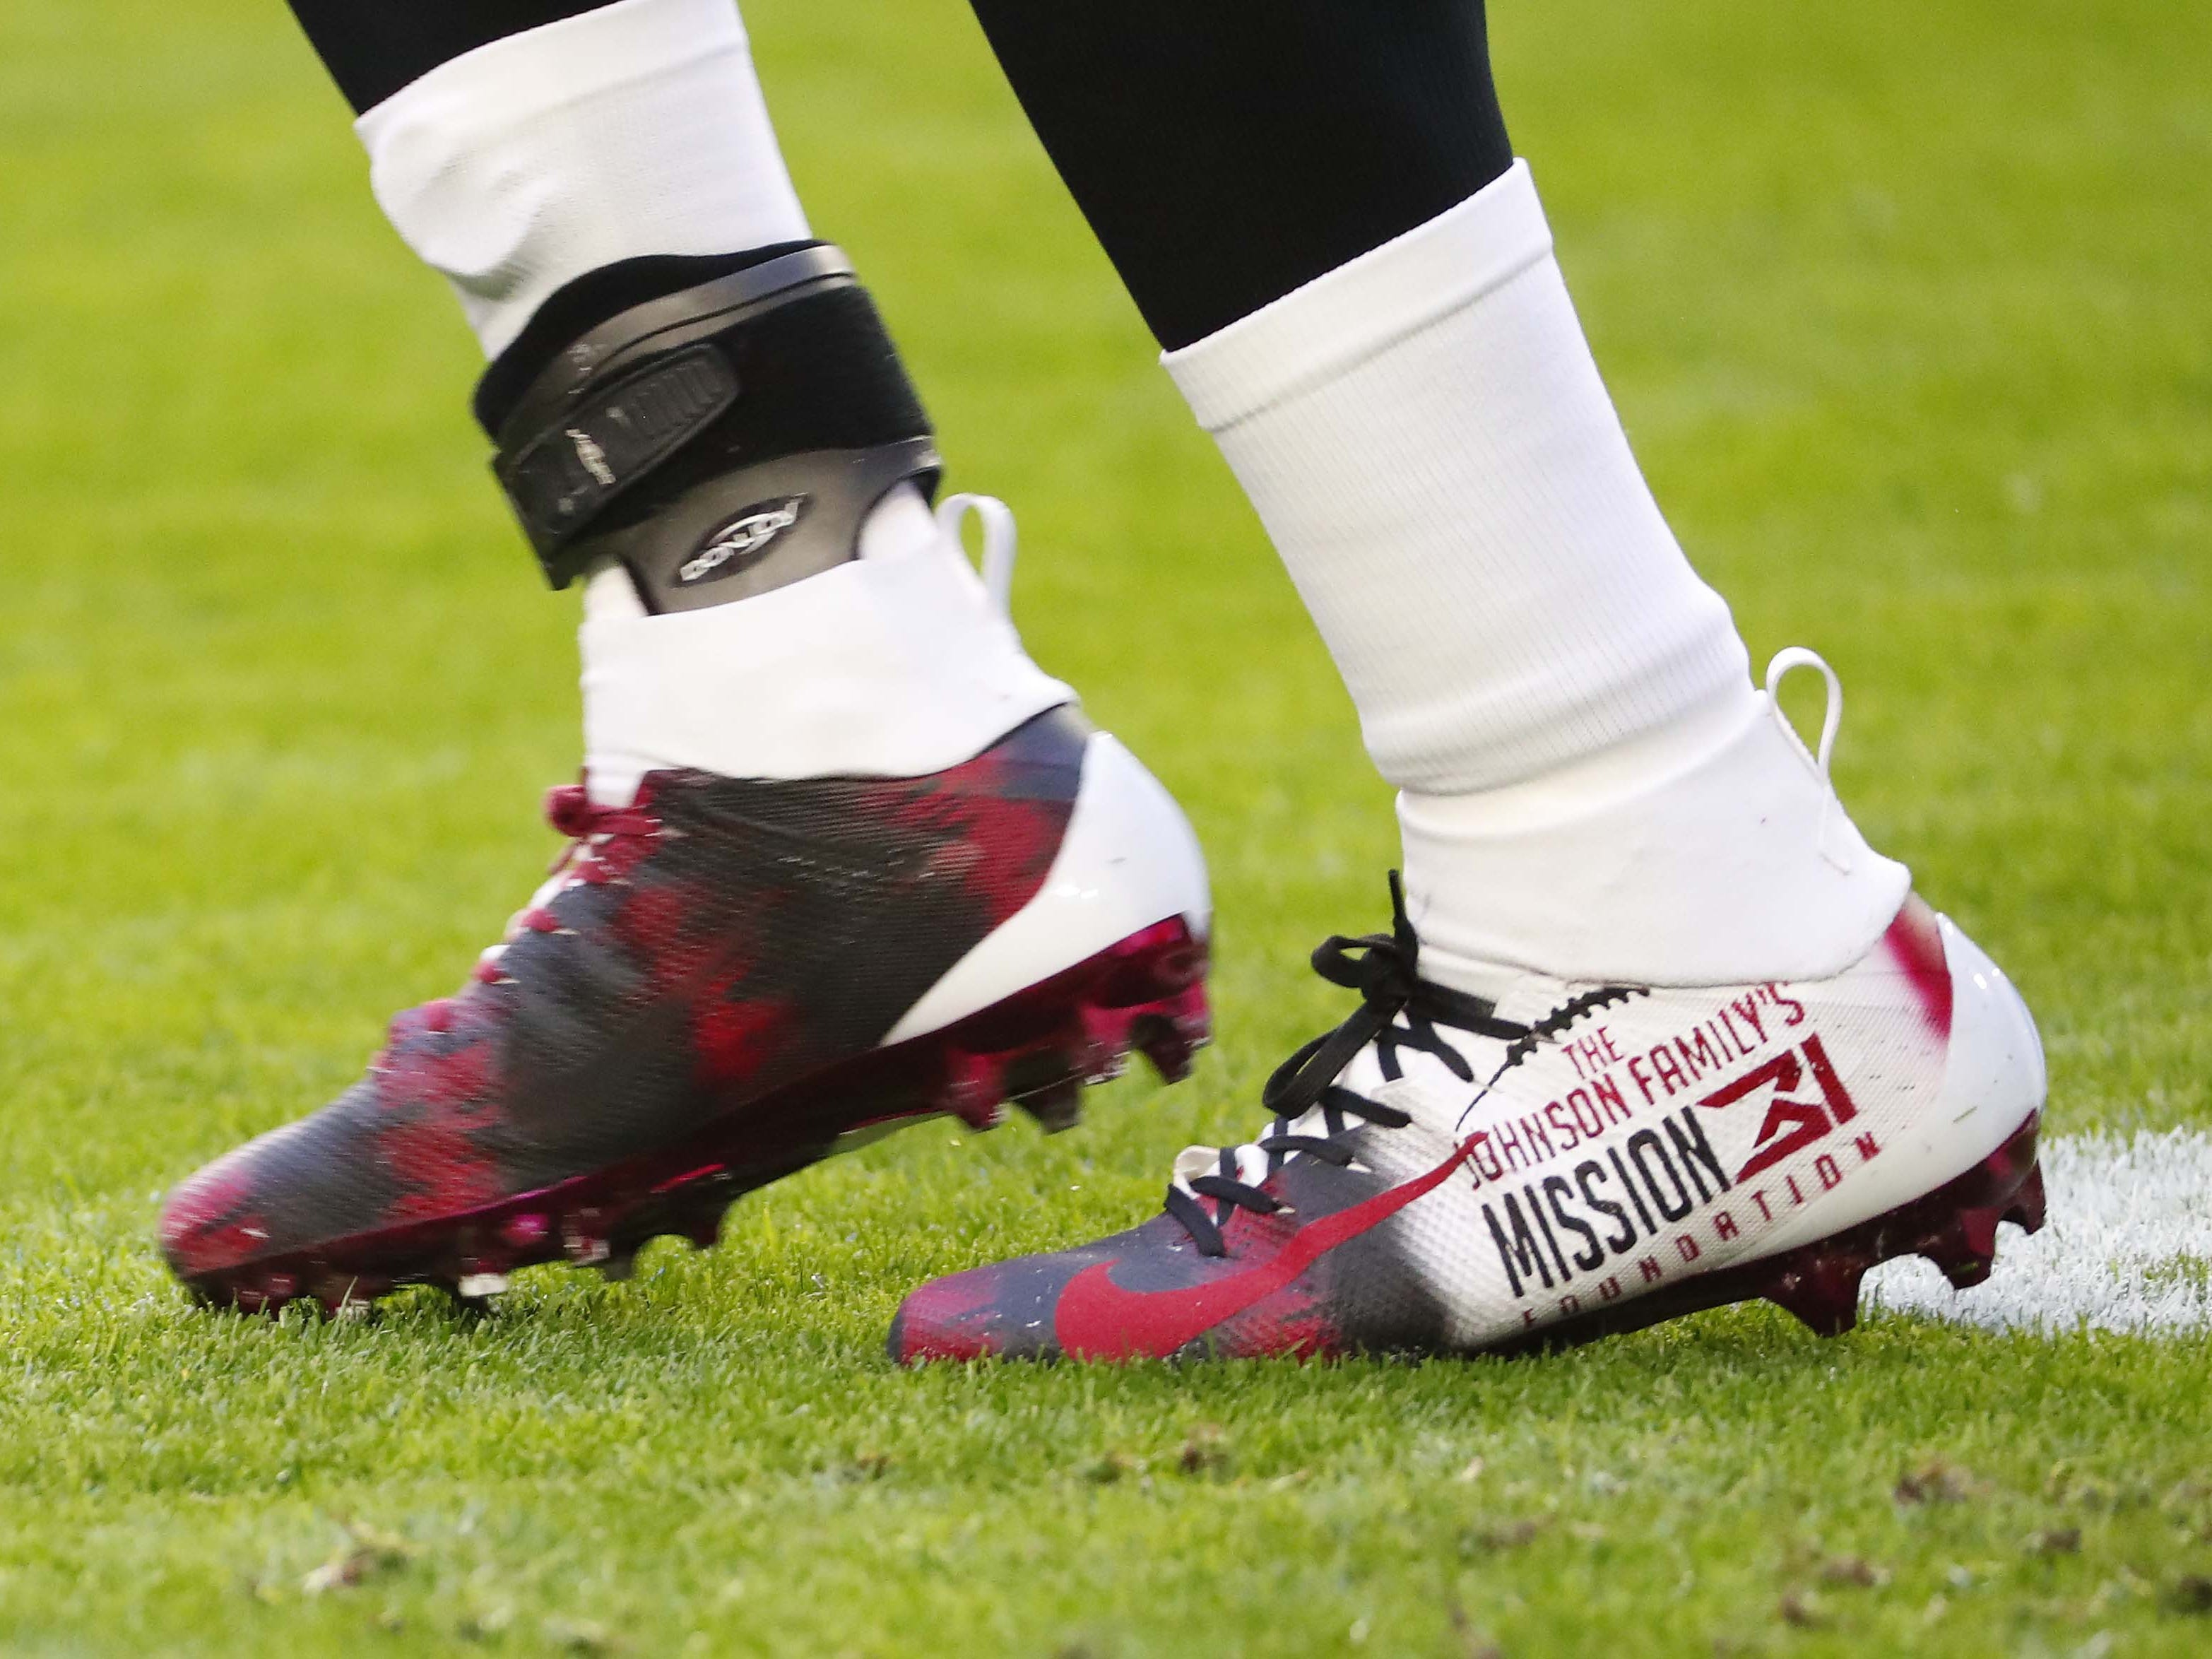 Arizona Cardinals running back David Johnson (31) wears cleats as part of the NFL's My Cause My Cleats campaign before playing against the Detroit Lions December 9.